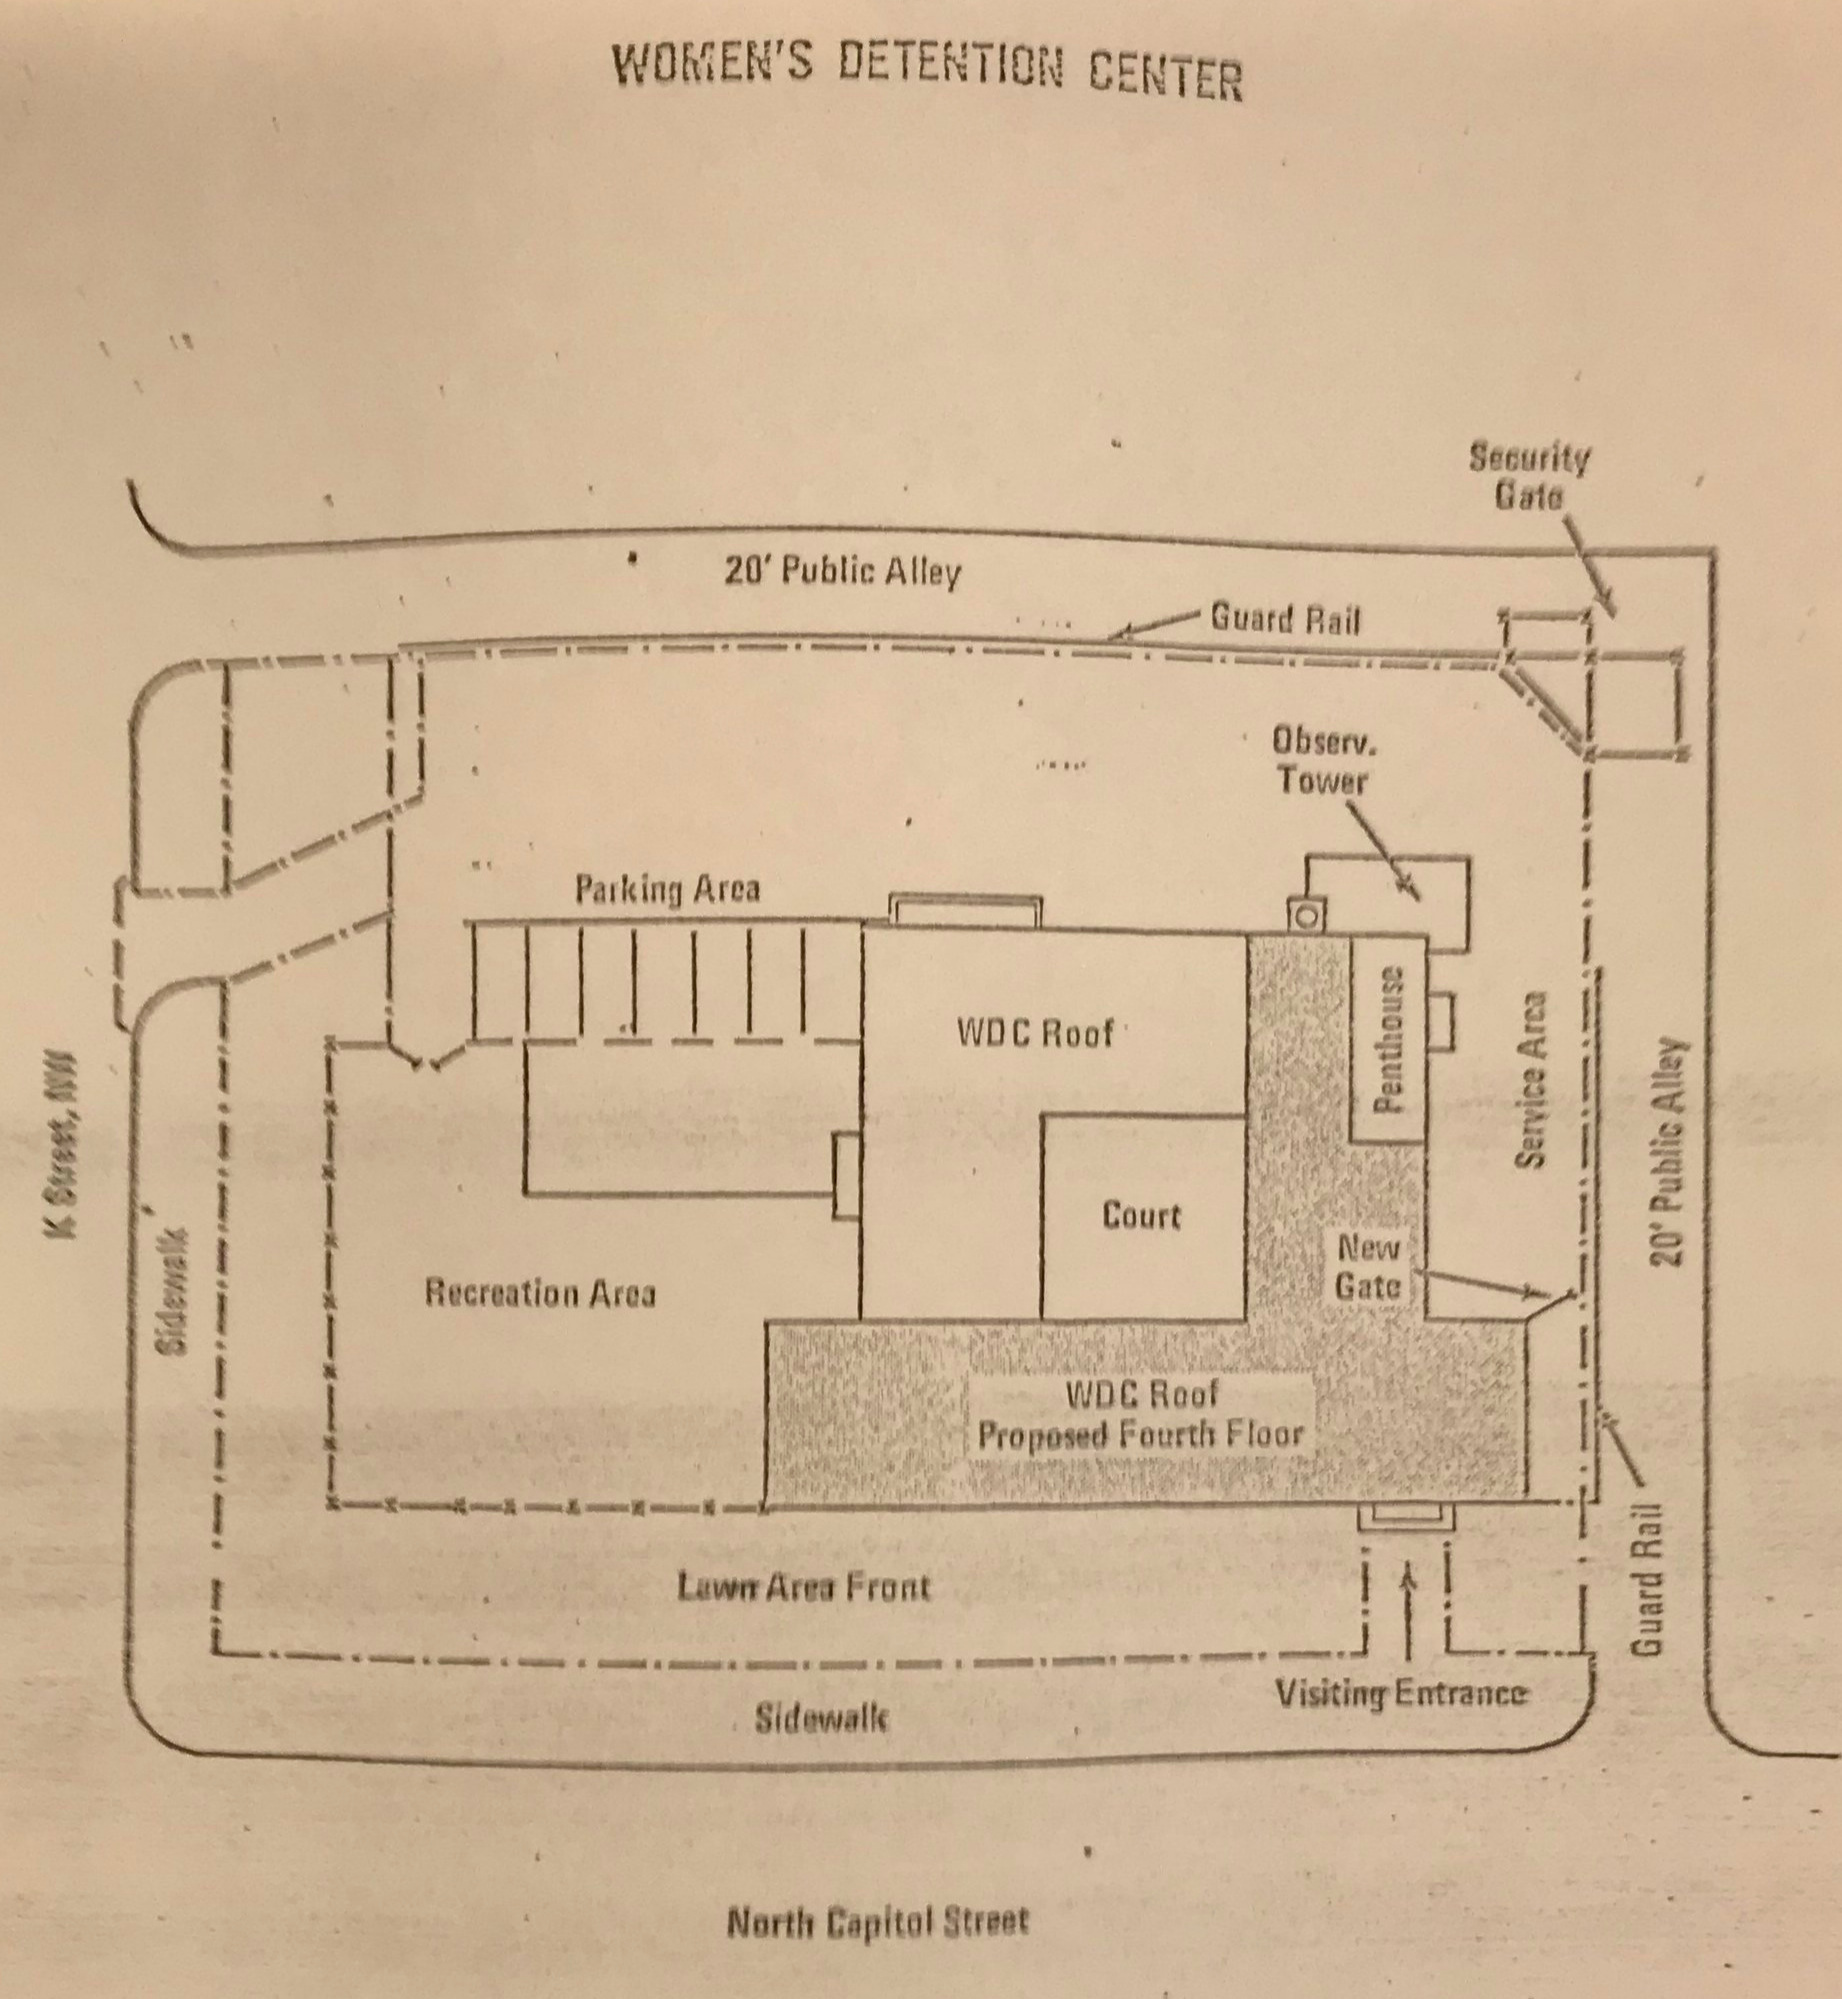 Map of Women's Detention Center, Courtesy of American University Law Library, LAWCOR files, Box 89, 1973.